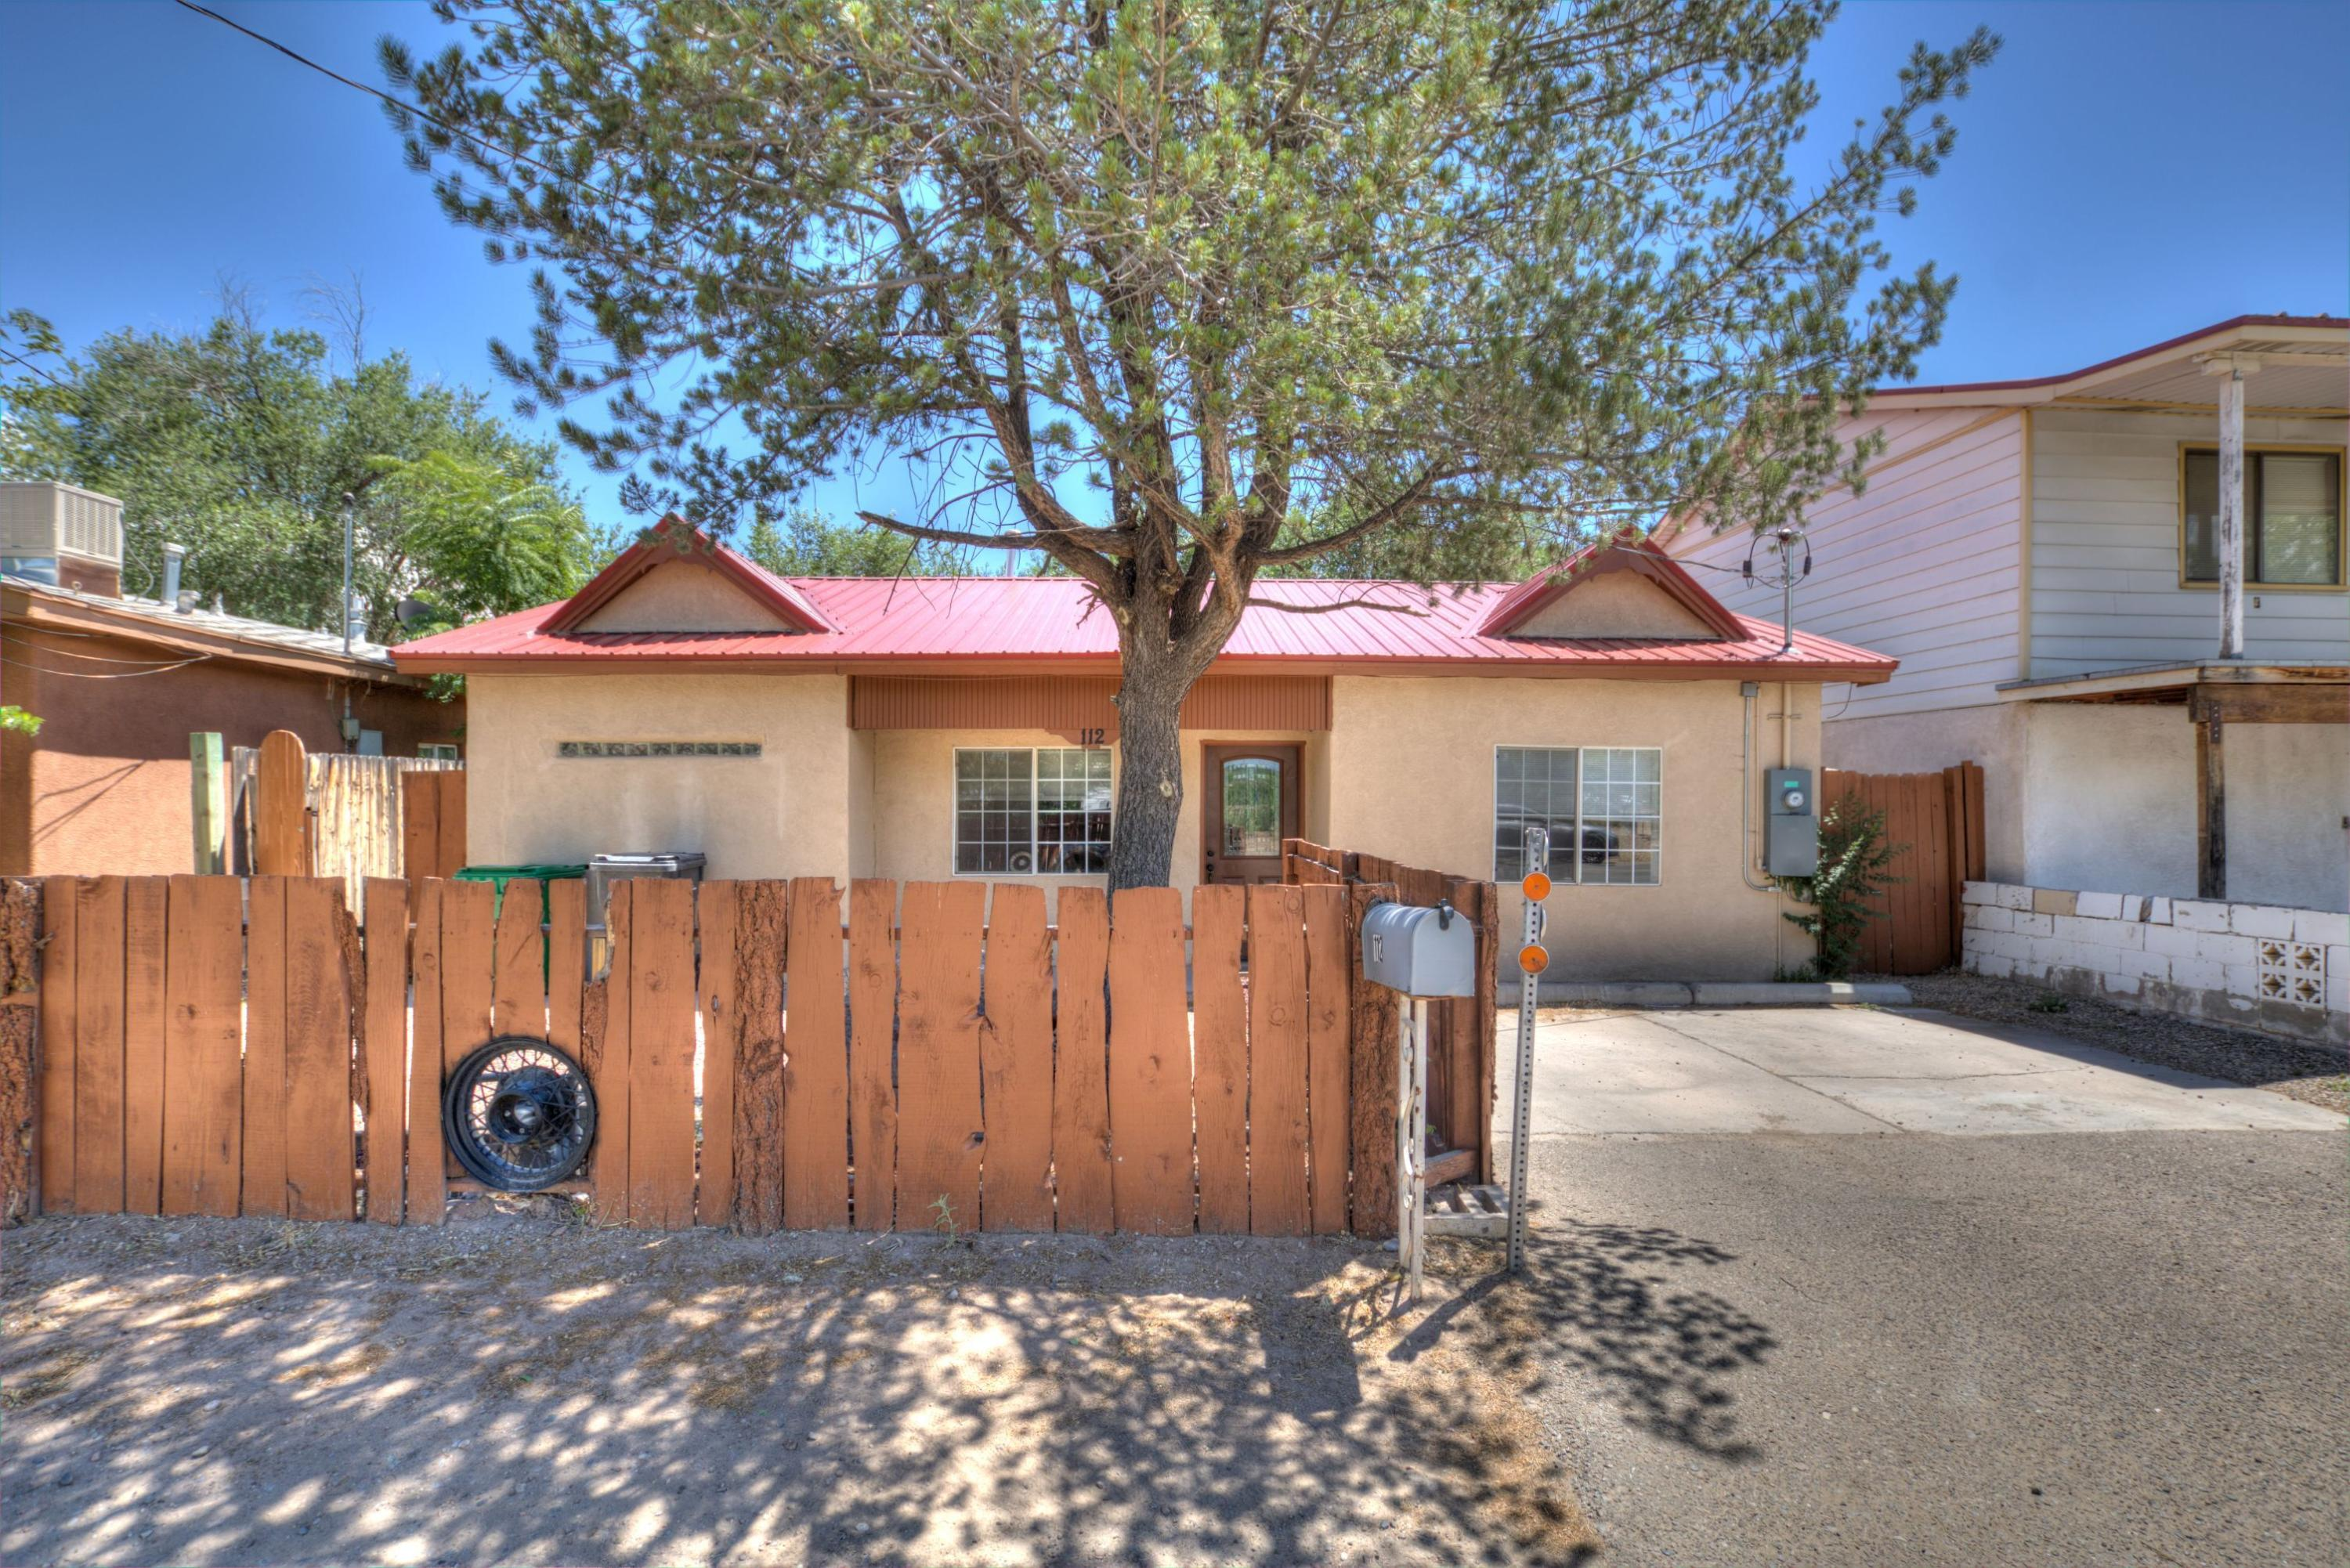 Fantastic opportunity to live in the North Valley! Nicely remodeled home with easy access to Paseo del Norte and I-40. This home has a brand new furnace and refrigerated air unit. Newer flooring throughout, updated kitchen (refrigerator included) and bathrooms. Backyard includes a fire pit and a covered patio, perfect for a staycation! Make an appointment today before its gone!